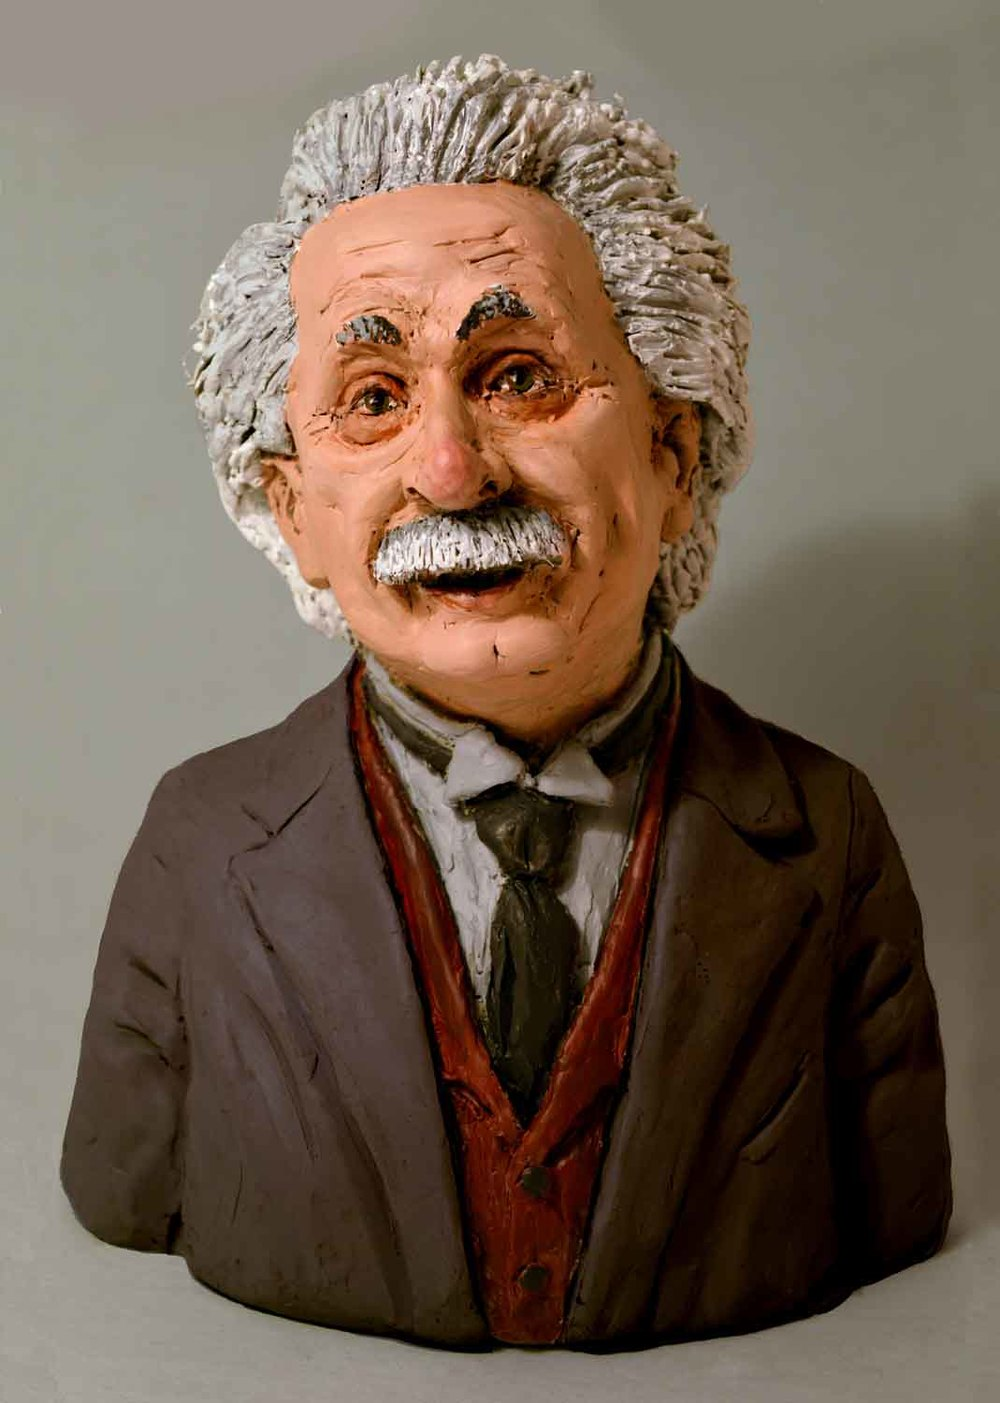 Albert Einstein for a Museum show (Israel) to be announced